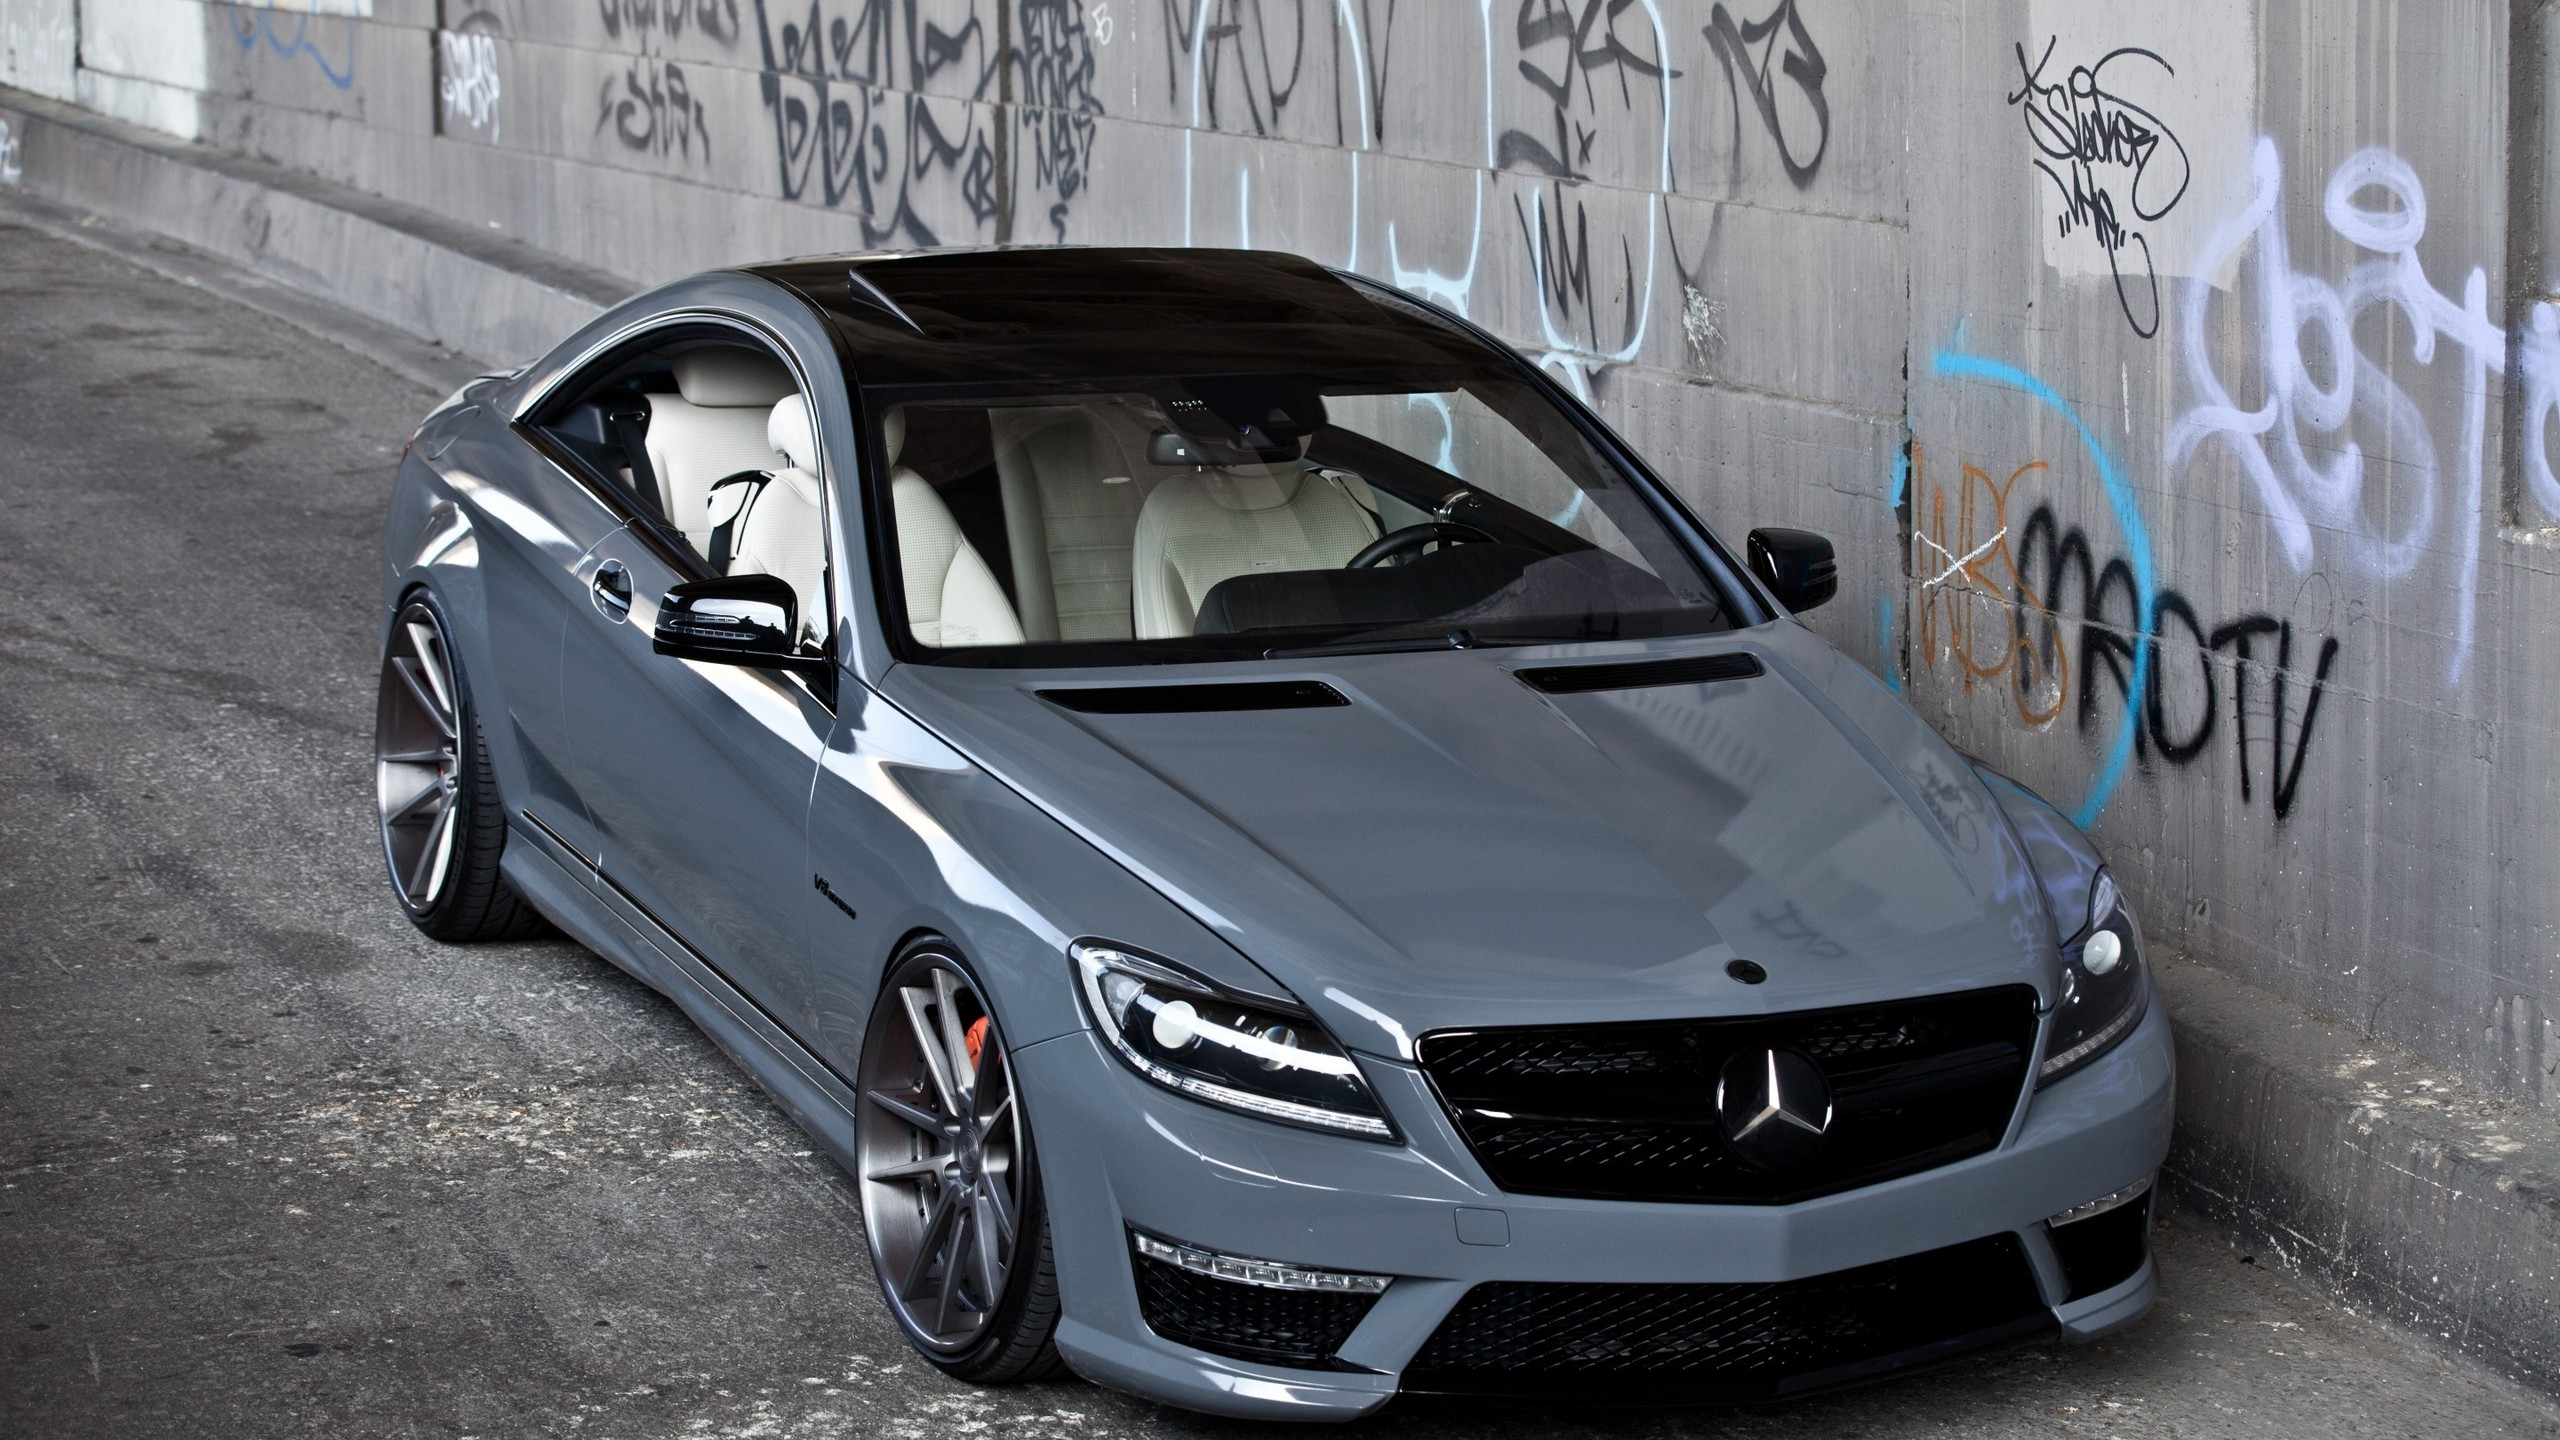 Mercedes CL63 AMG for 2560x1440 HDTV resolution